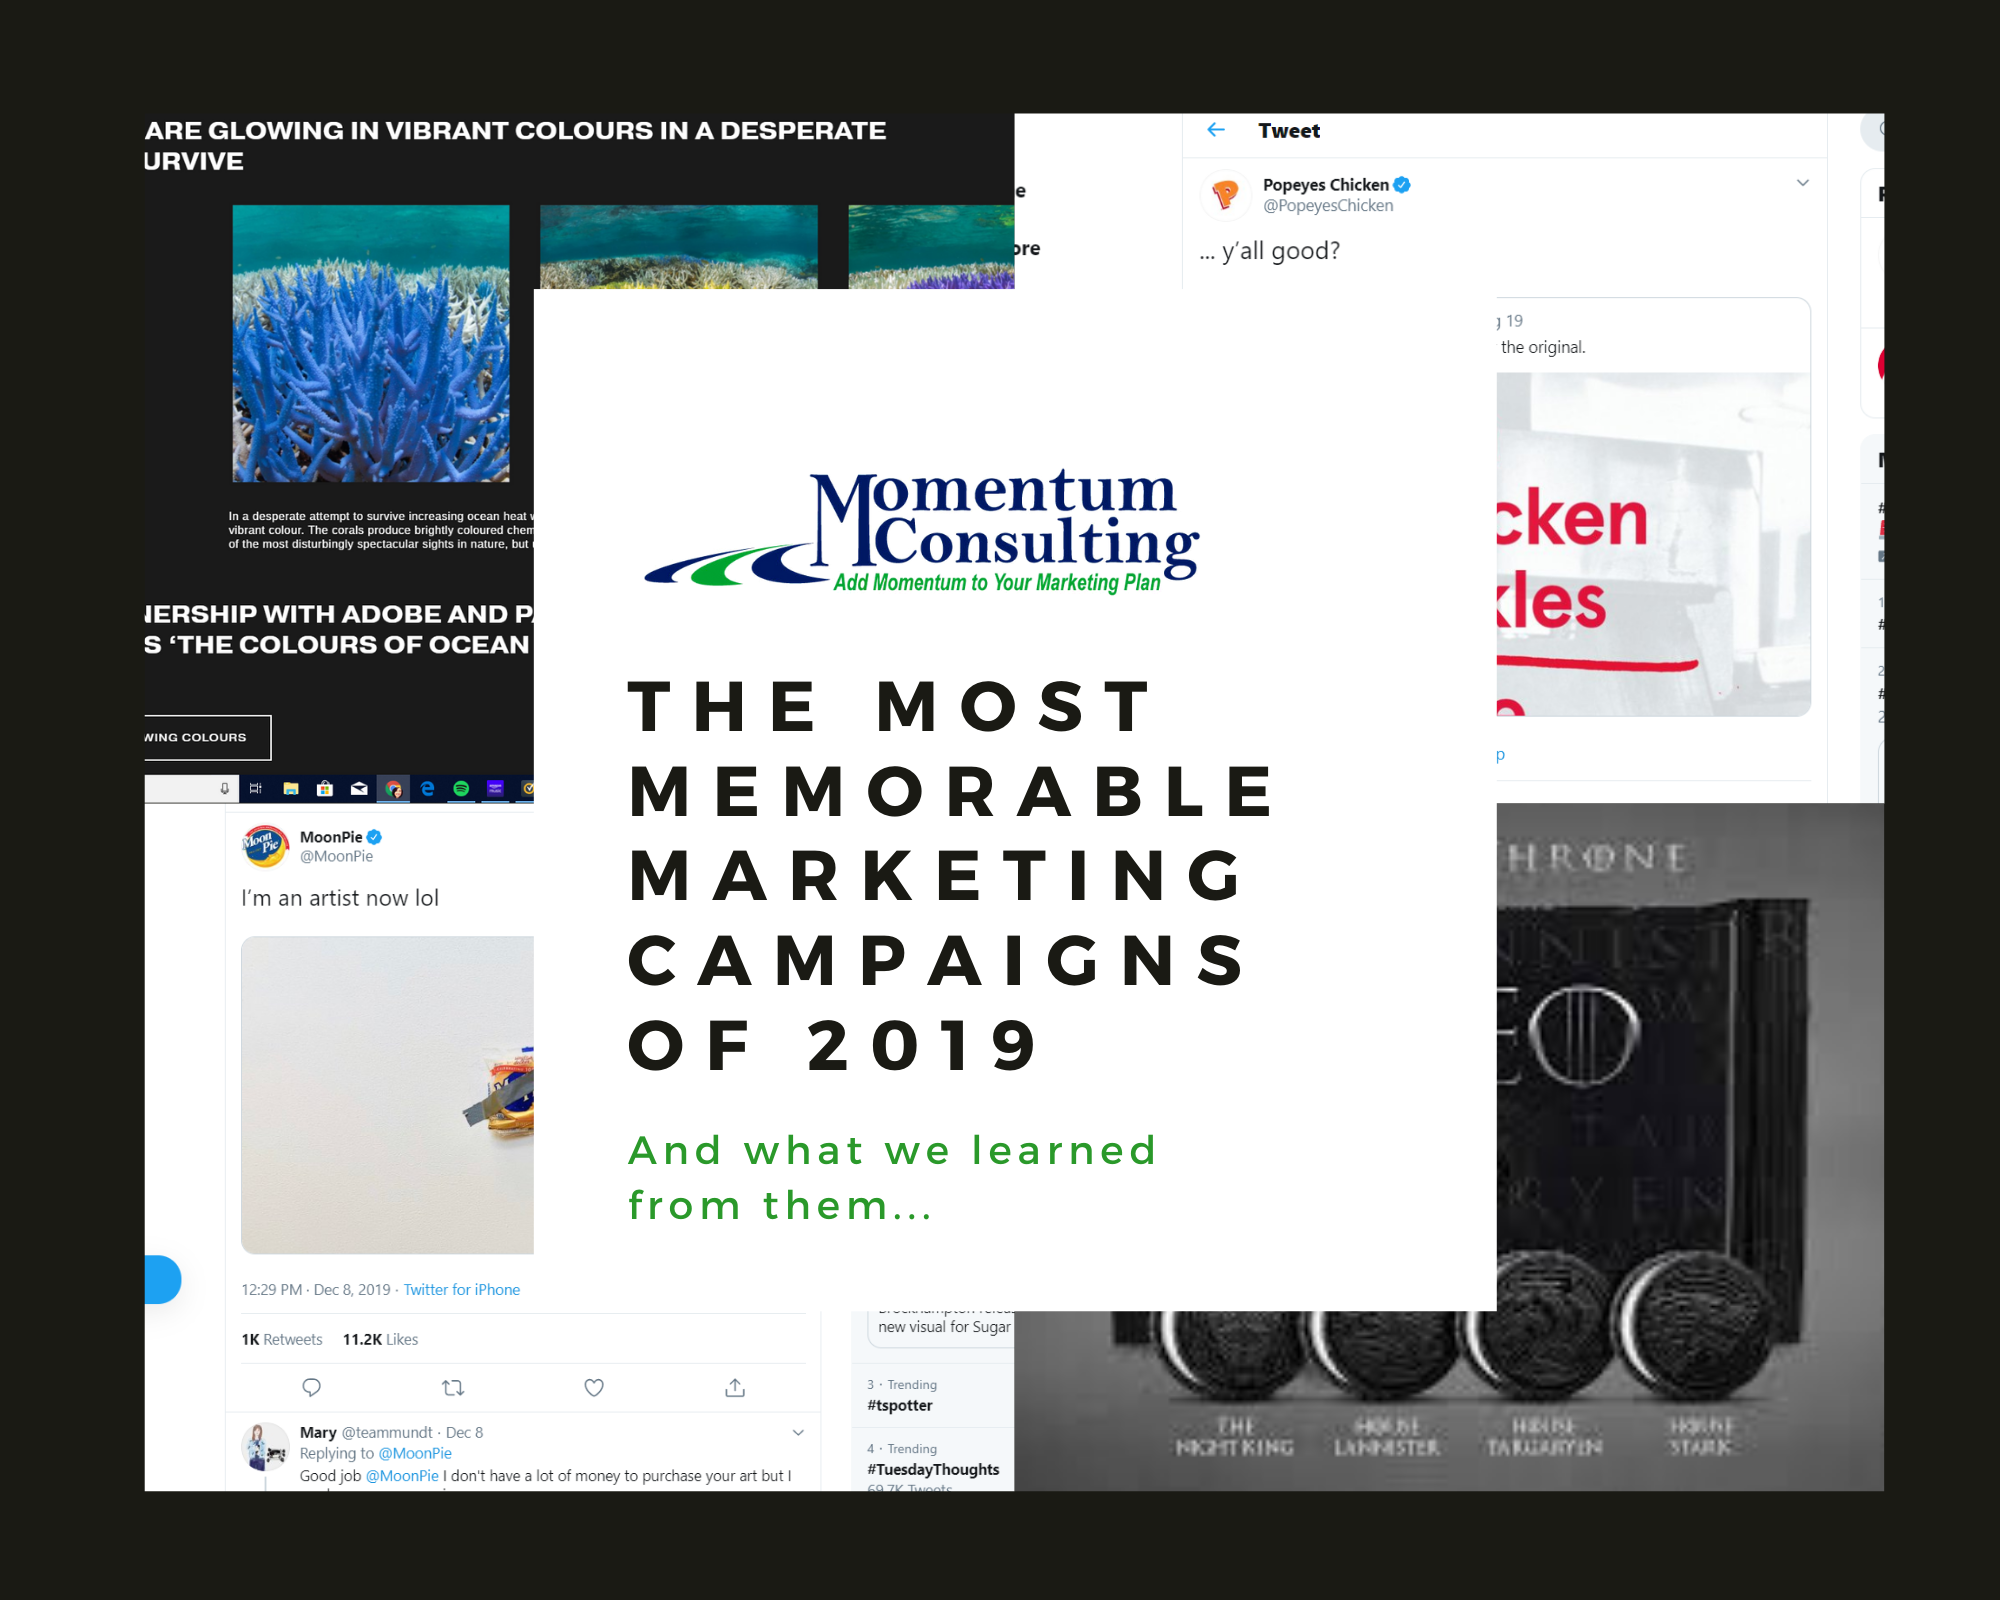 most memorable marketing campaigns of 2019